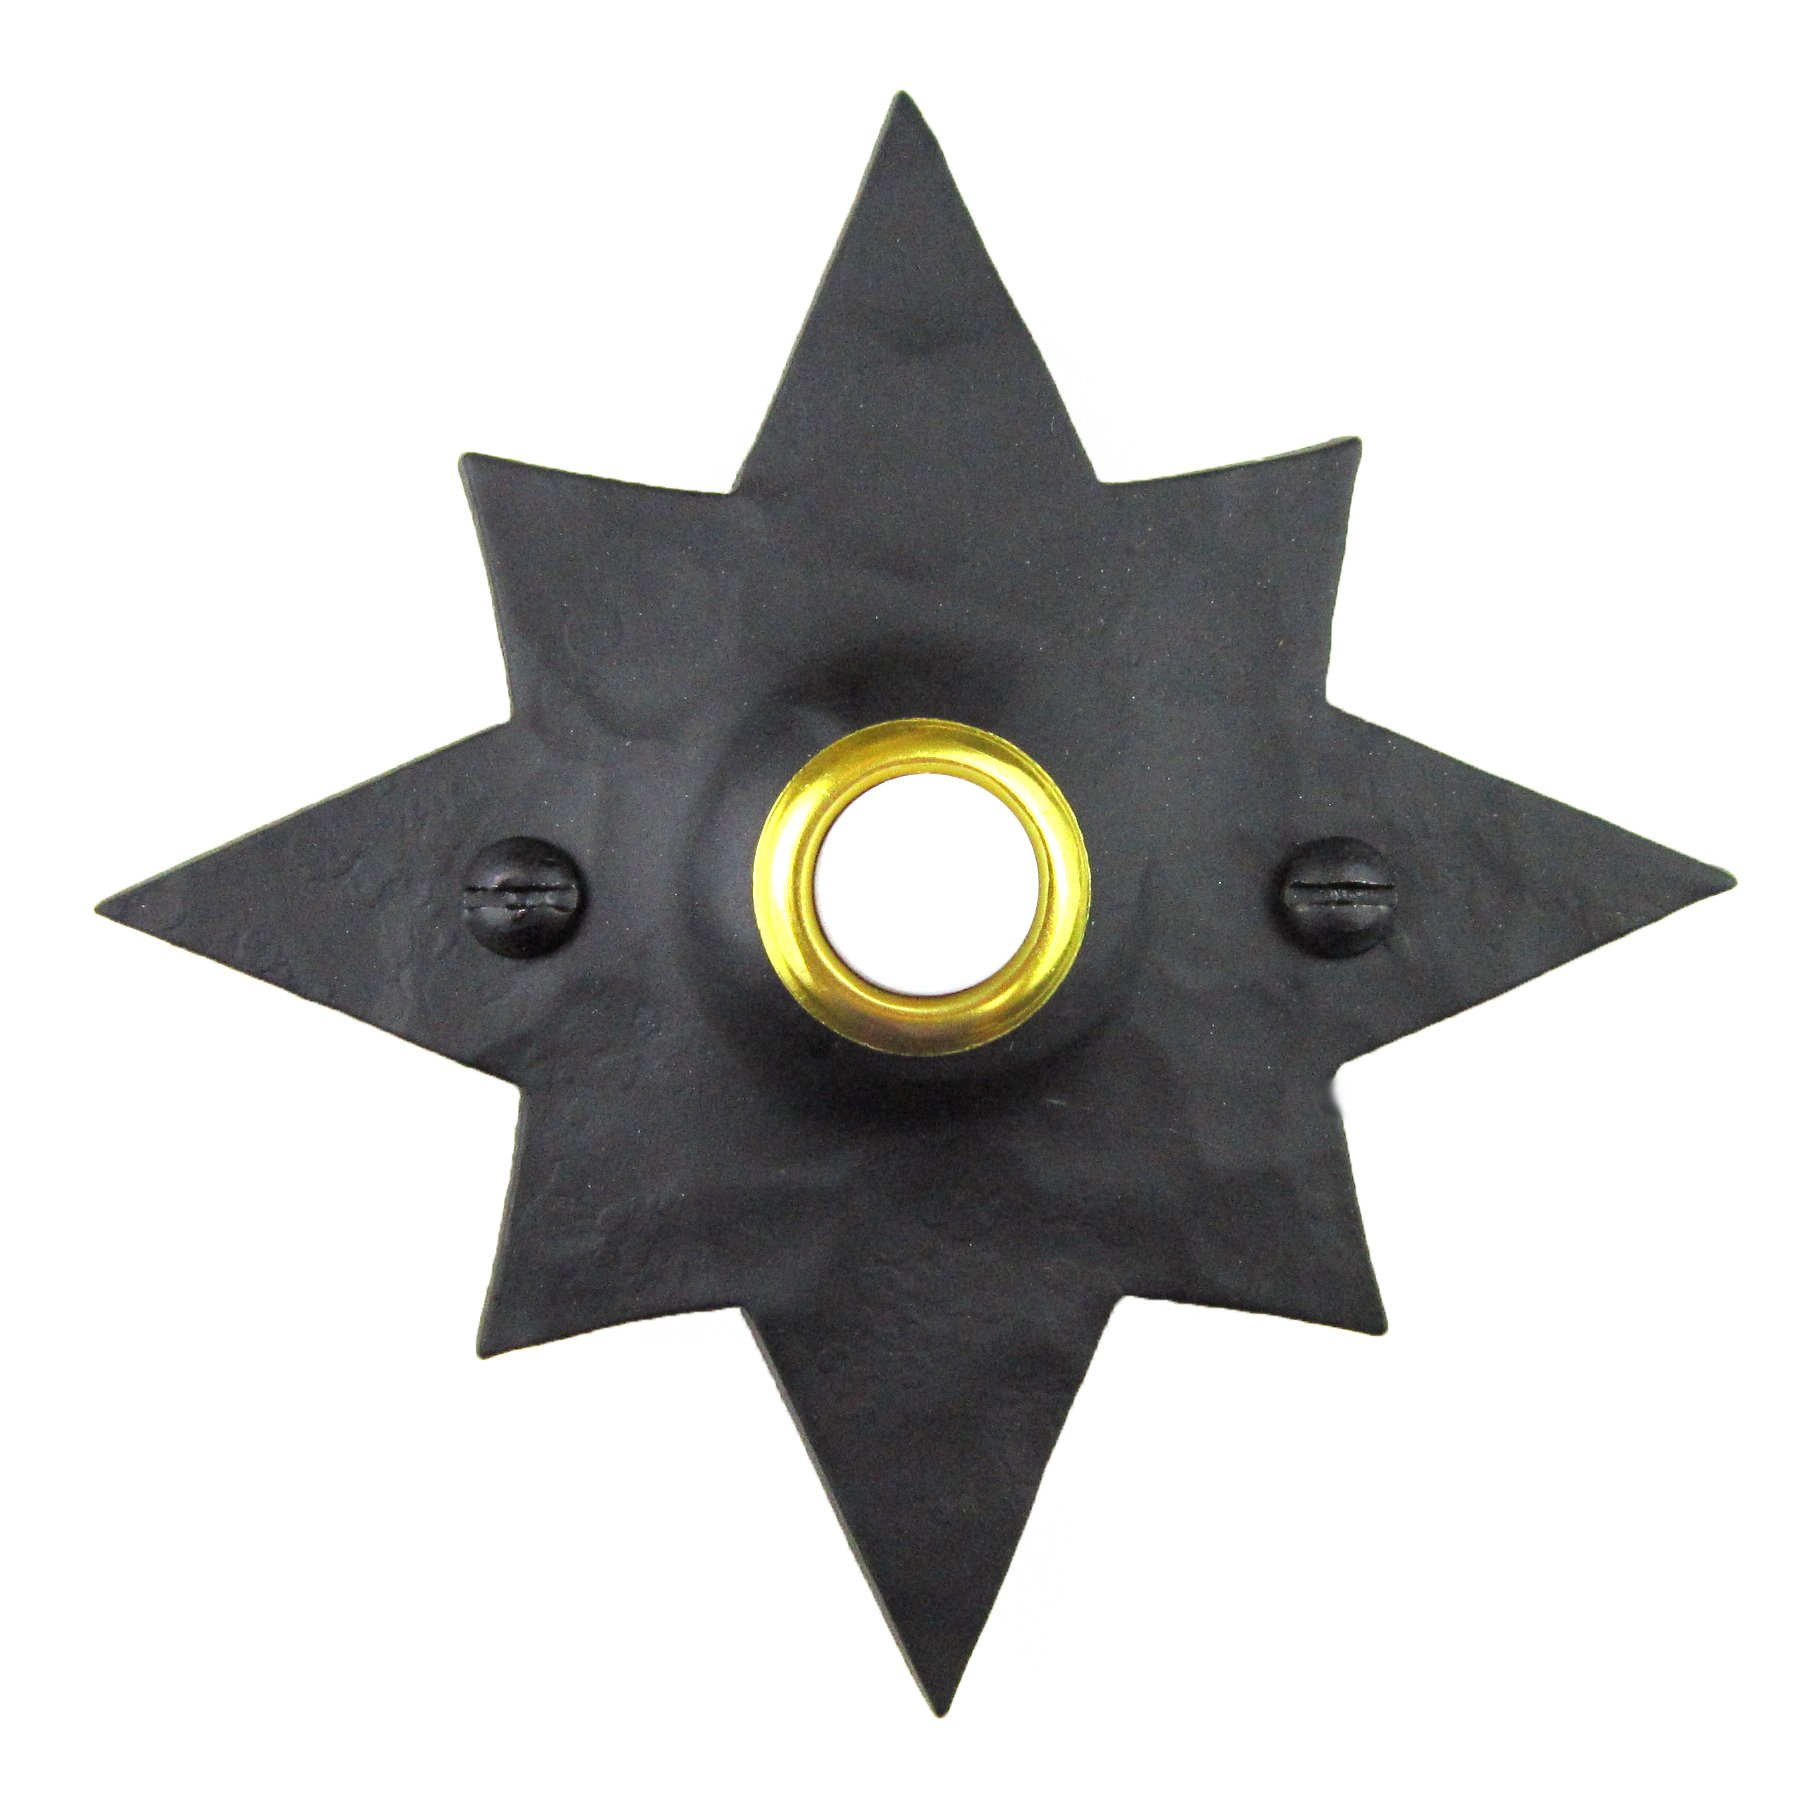 Rustic Hammered Star Wrought Iron Doorbell Cover D5 (Black)